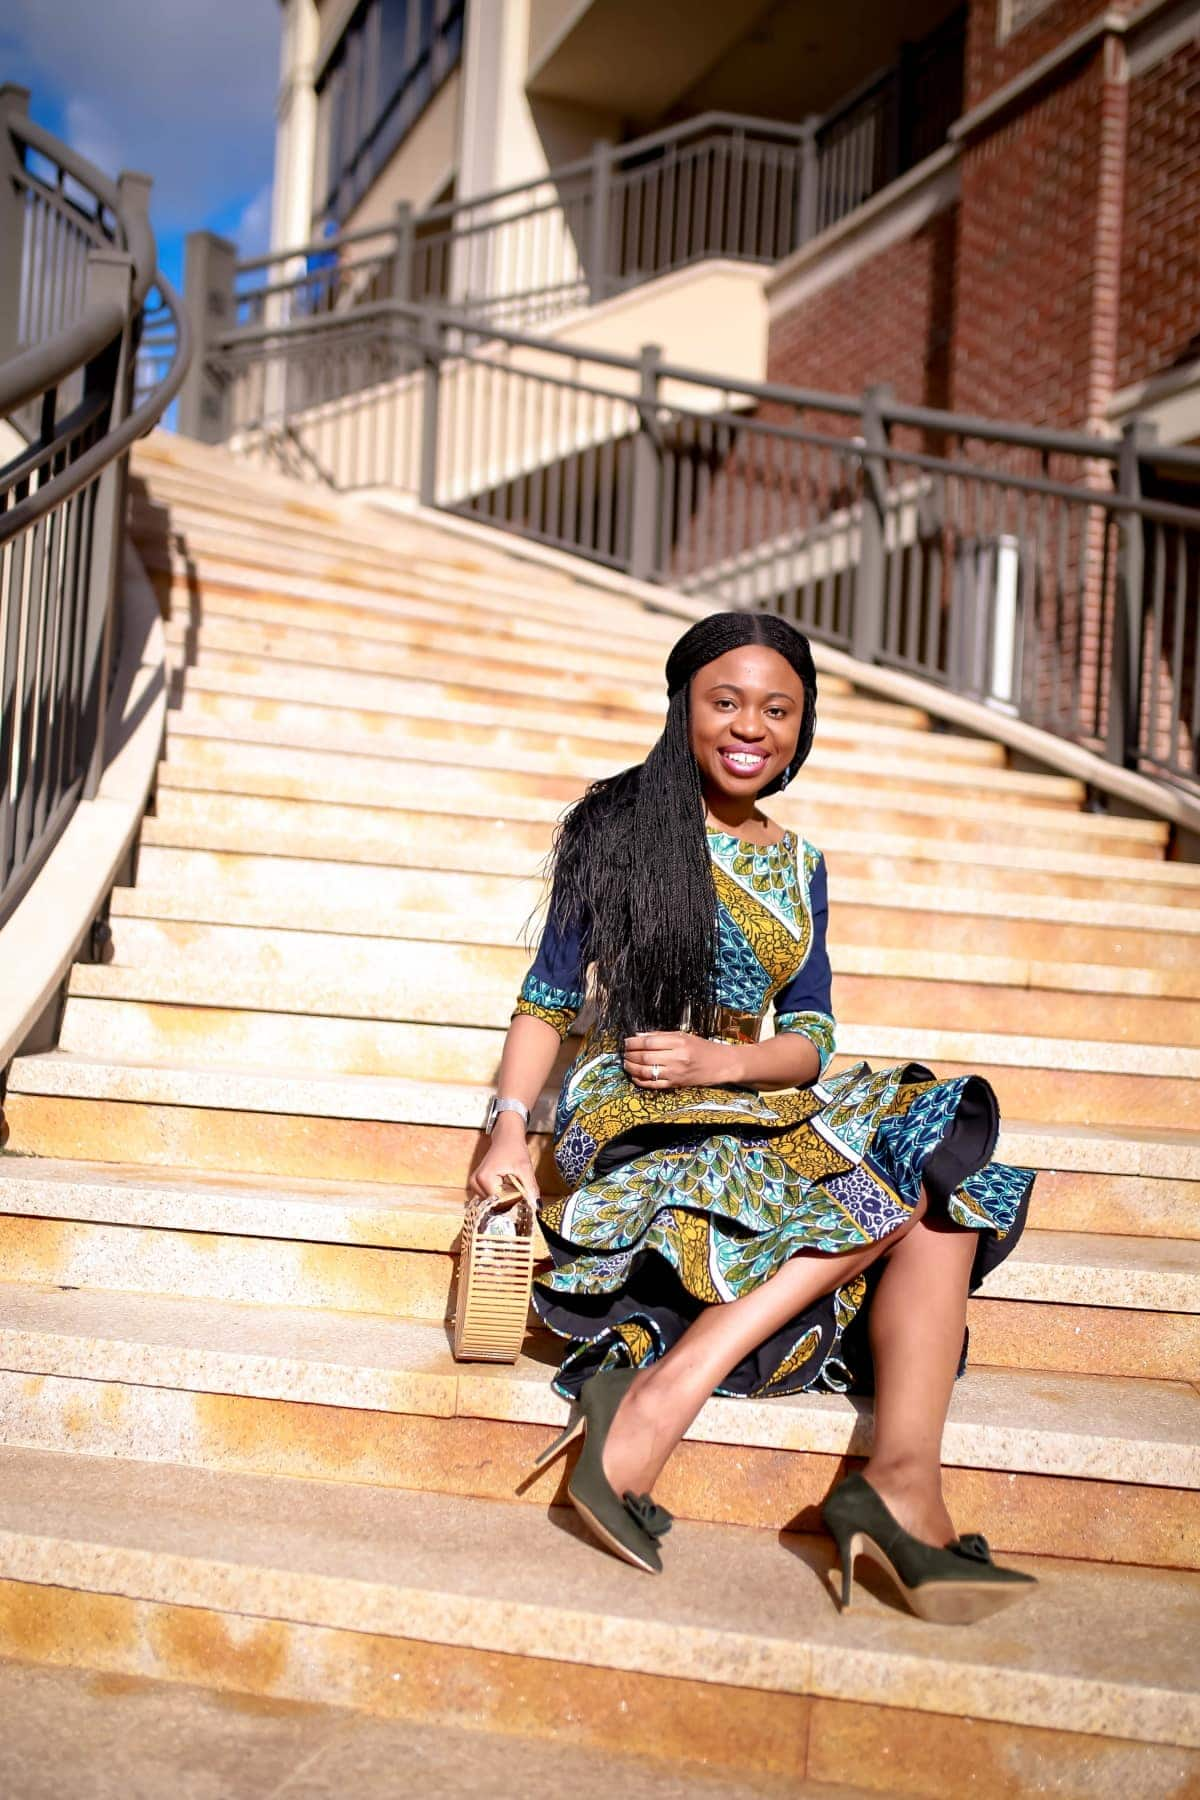 Looking for the perfect African print dress this summer? Ankara dress lover, Louisa, shares how she styles this lovely African attire, a three-tier ankara peplum dress in two ways. Plus details on where to buy the exact ankara midi dress she is wearing and how to make this African fashion dress for yourself. All about #africanfashionoutfits #africanprint #africanfashionstyles #nigerianfashion.